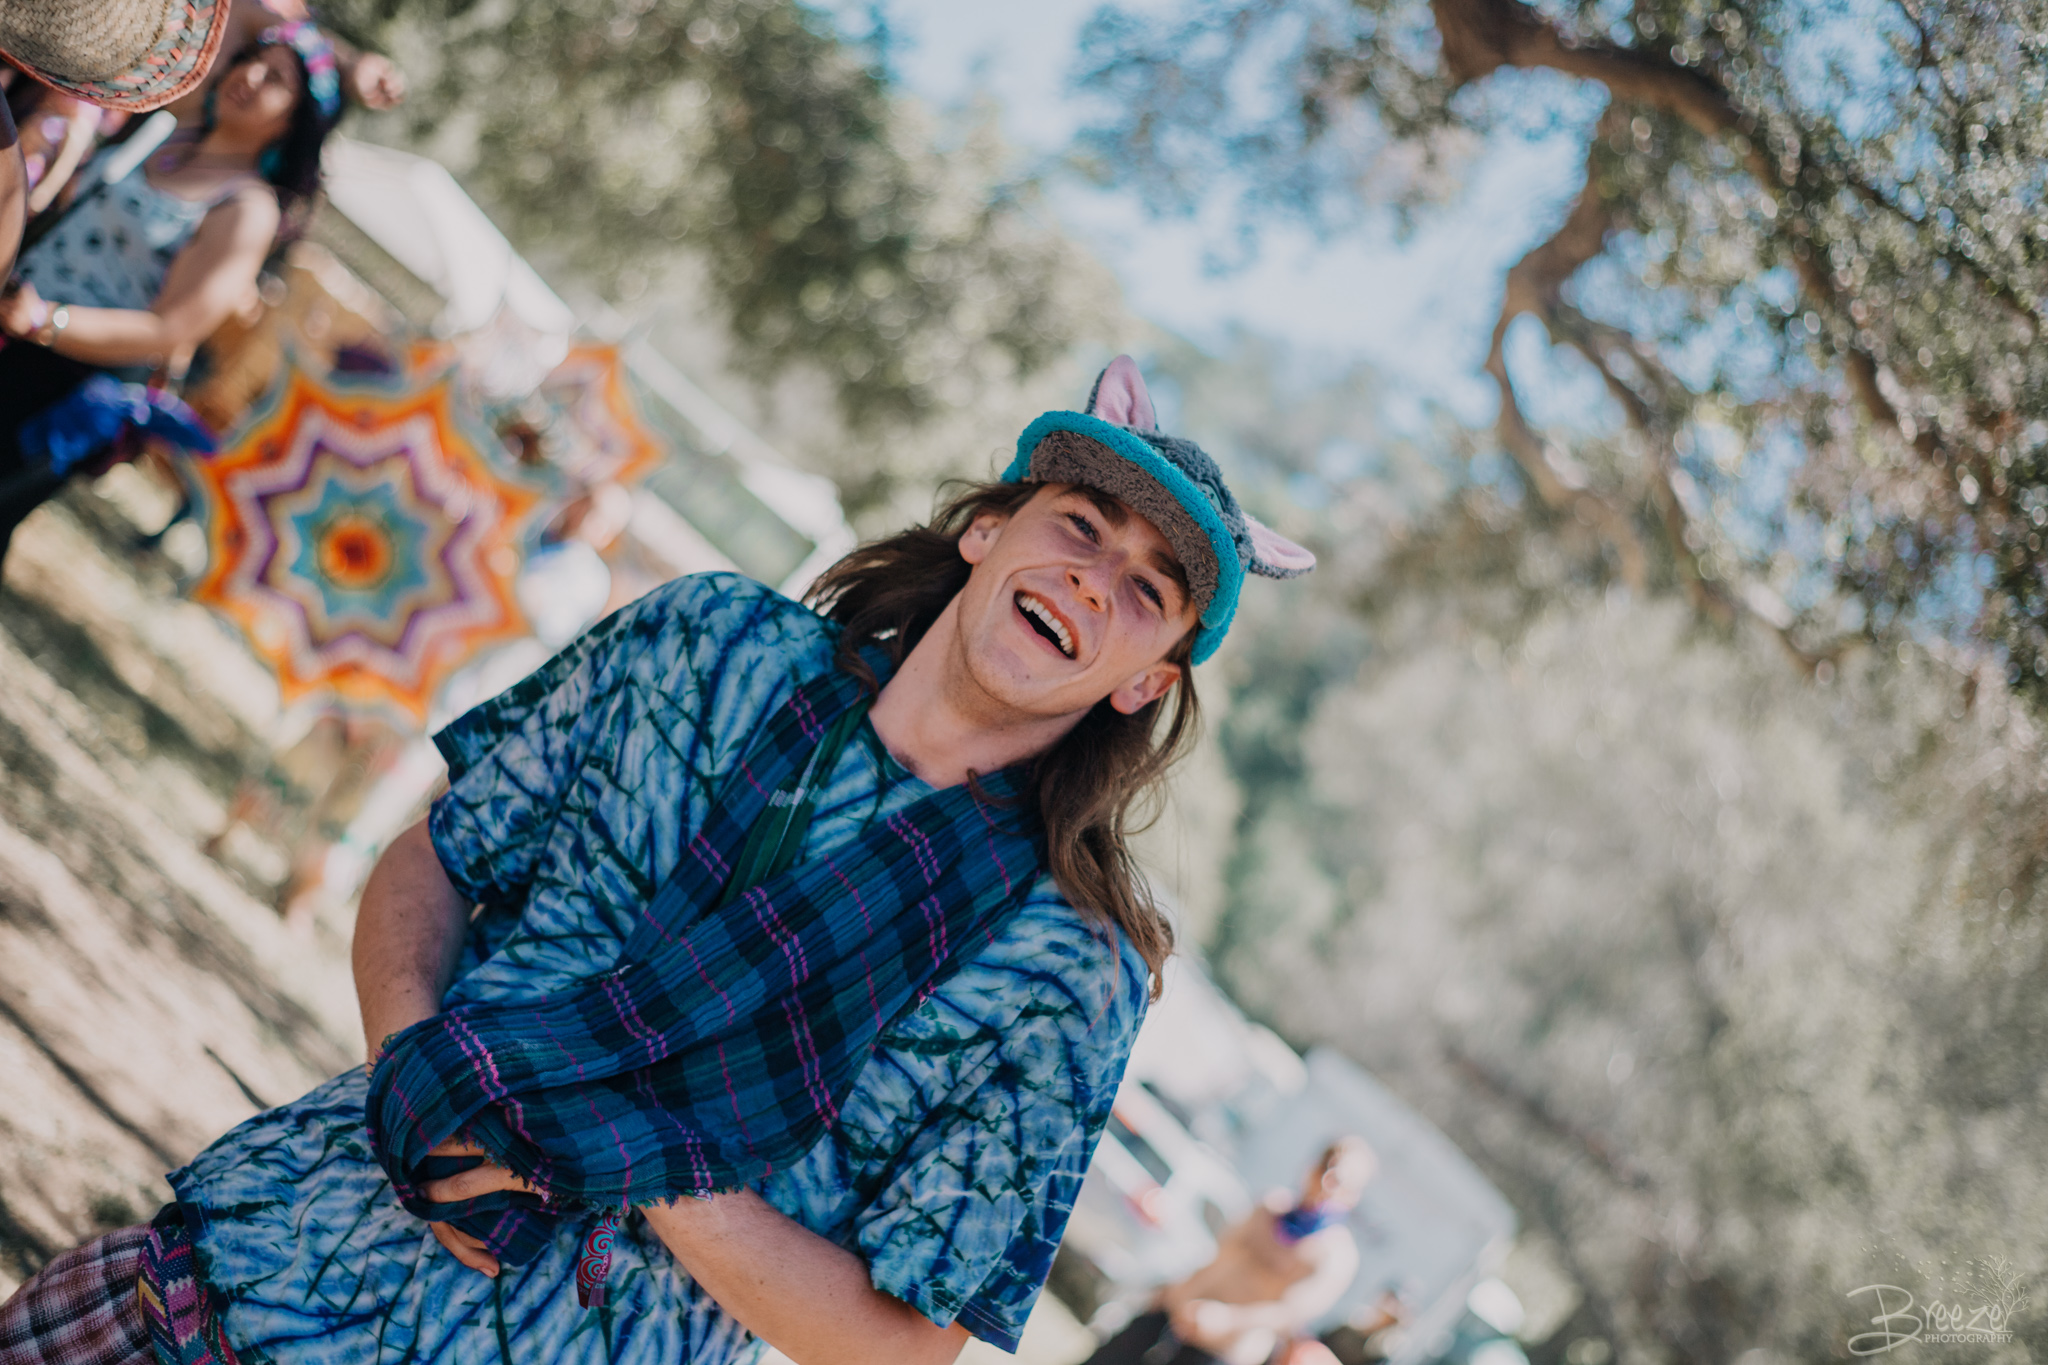 Lucidity.Festival.2019.Brie'Ana Breeze Photography and Media-6418.jpg